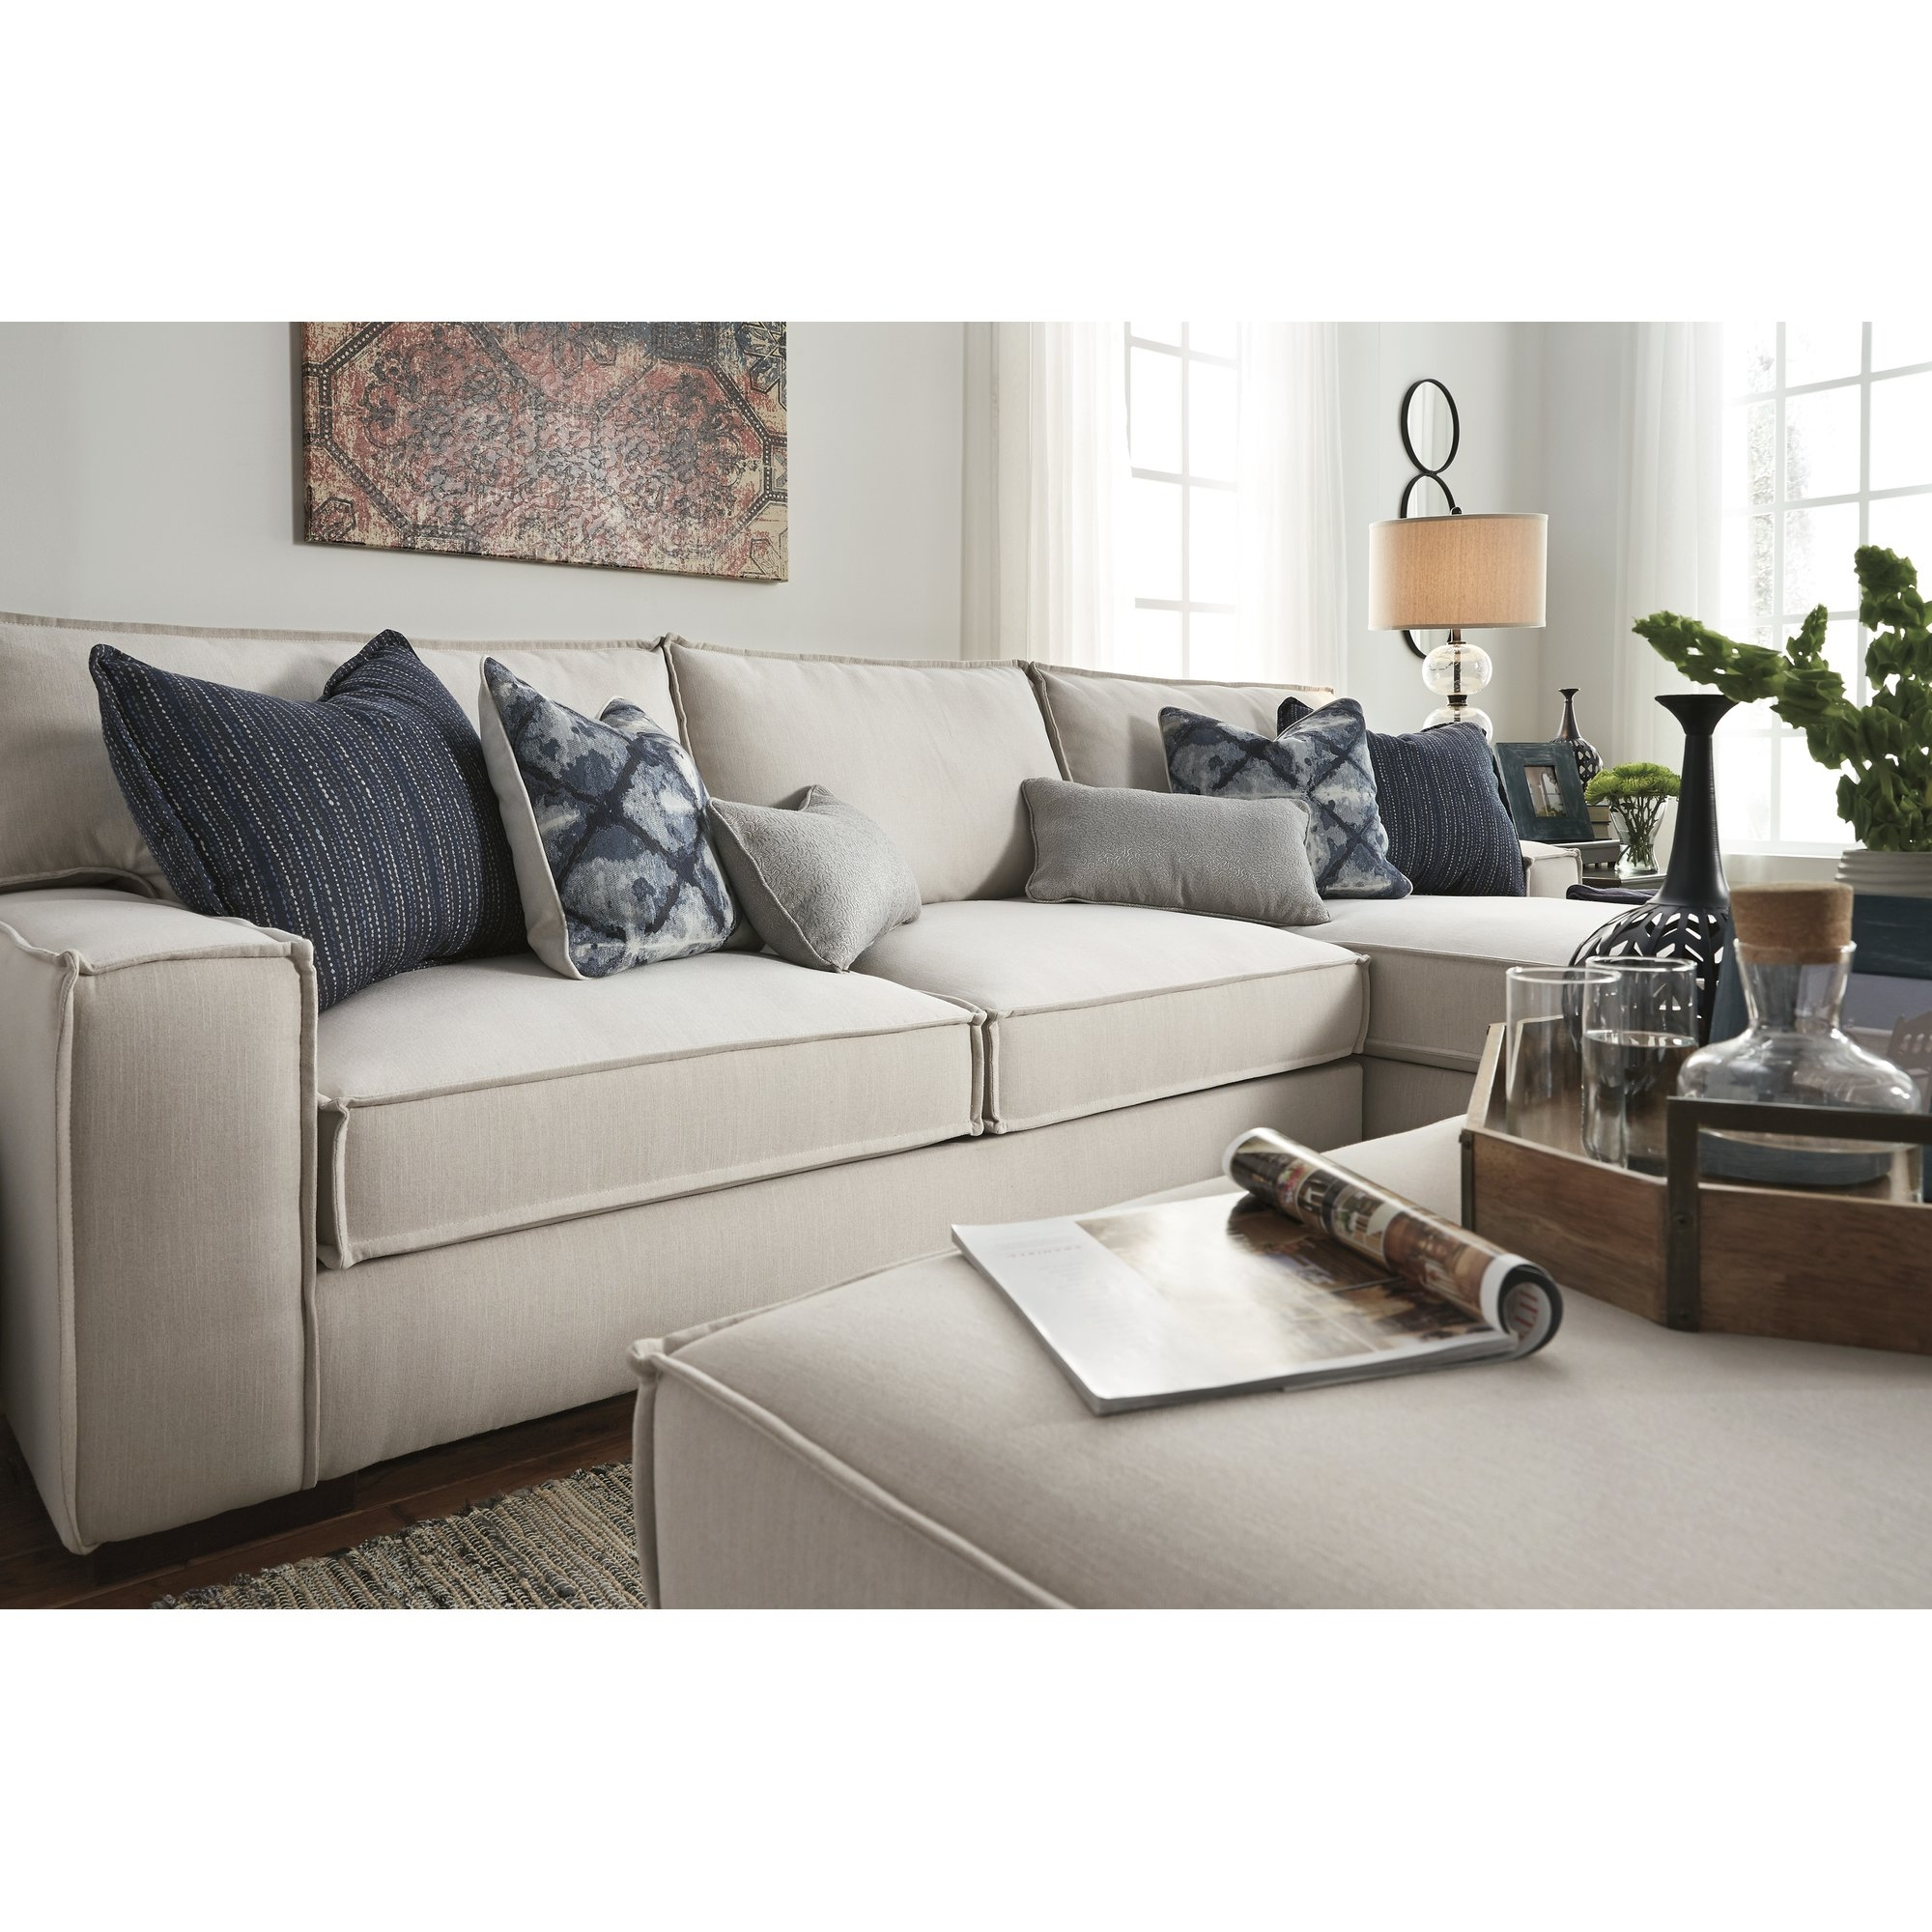 Sectionals Sectional Sofas Joss Main In Closeout Sectional Sofas (Image 10 of 15)